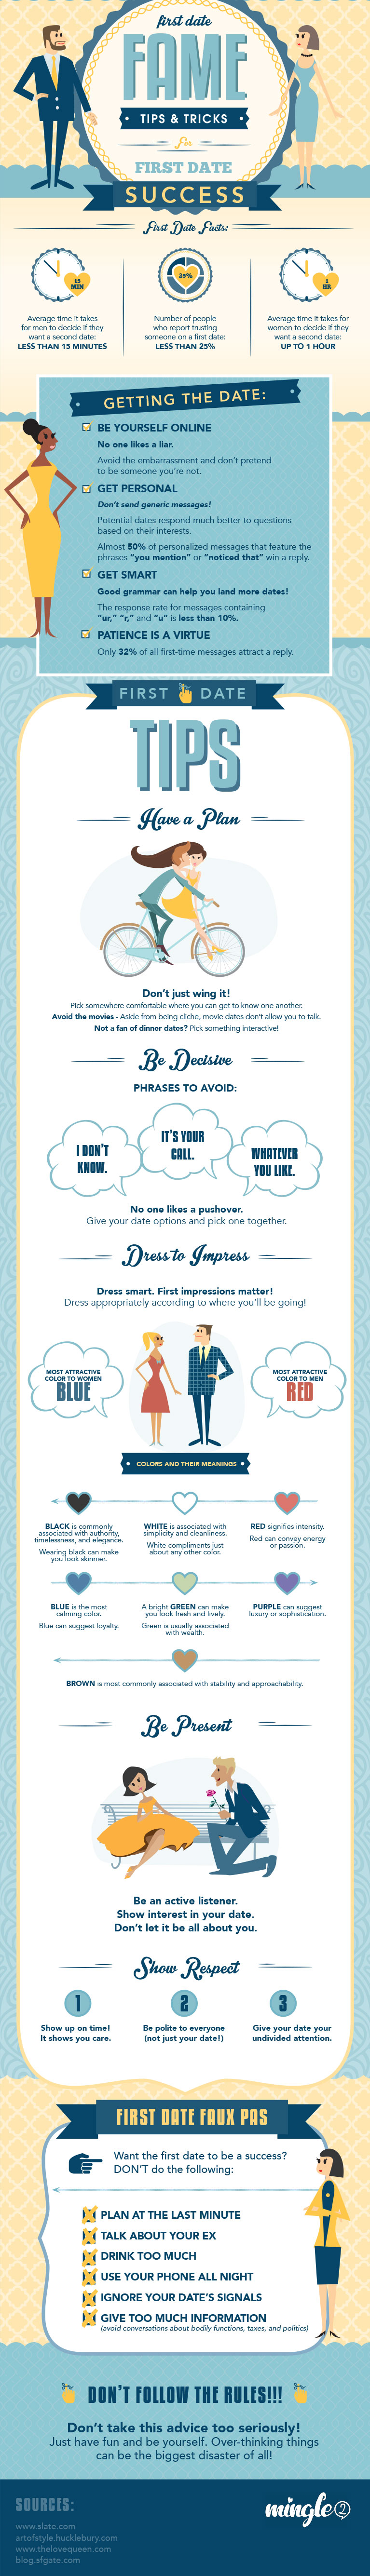 First Date Tips and Tricks Infographic